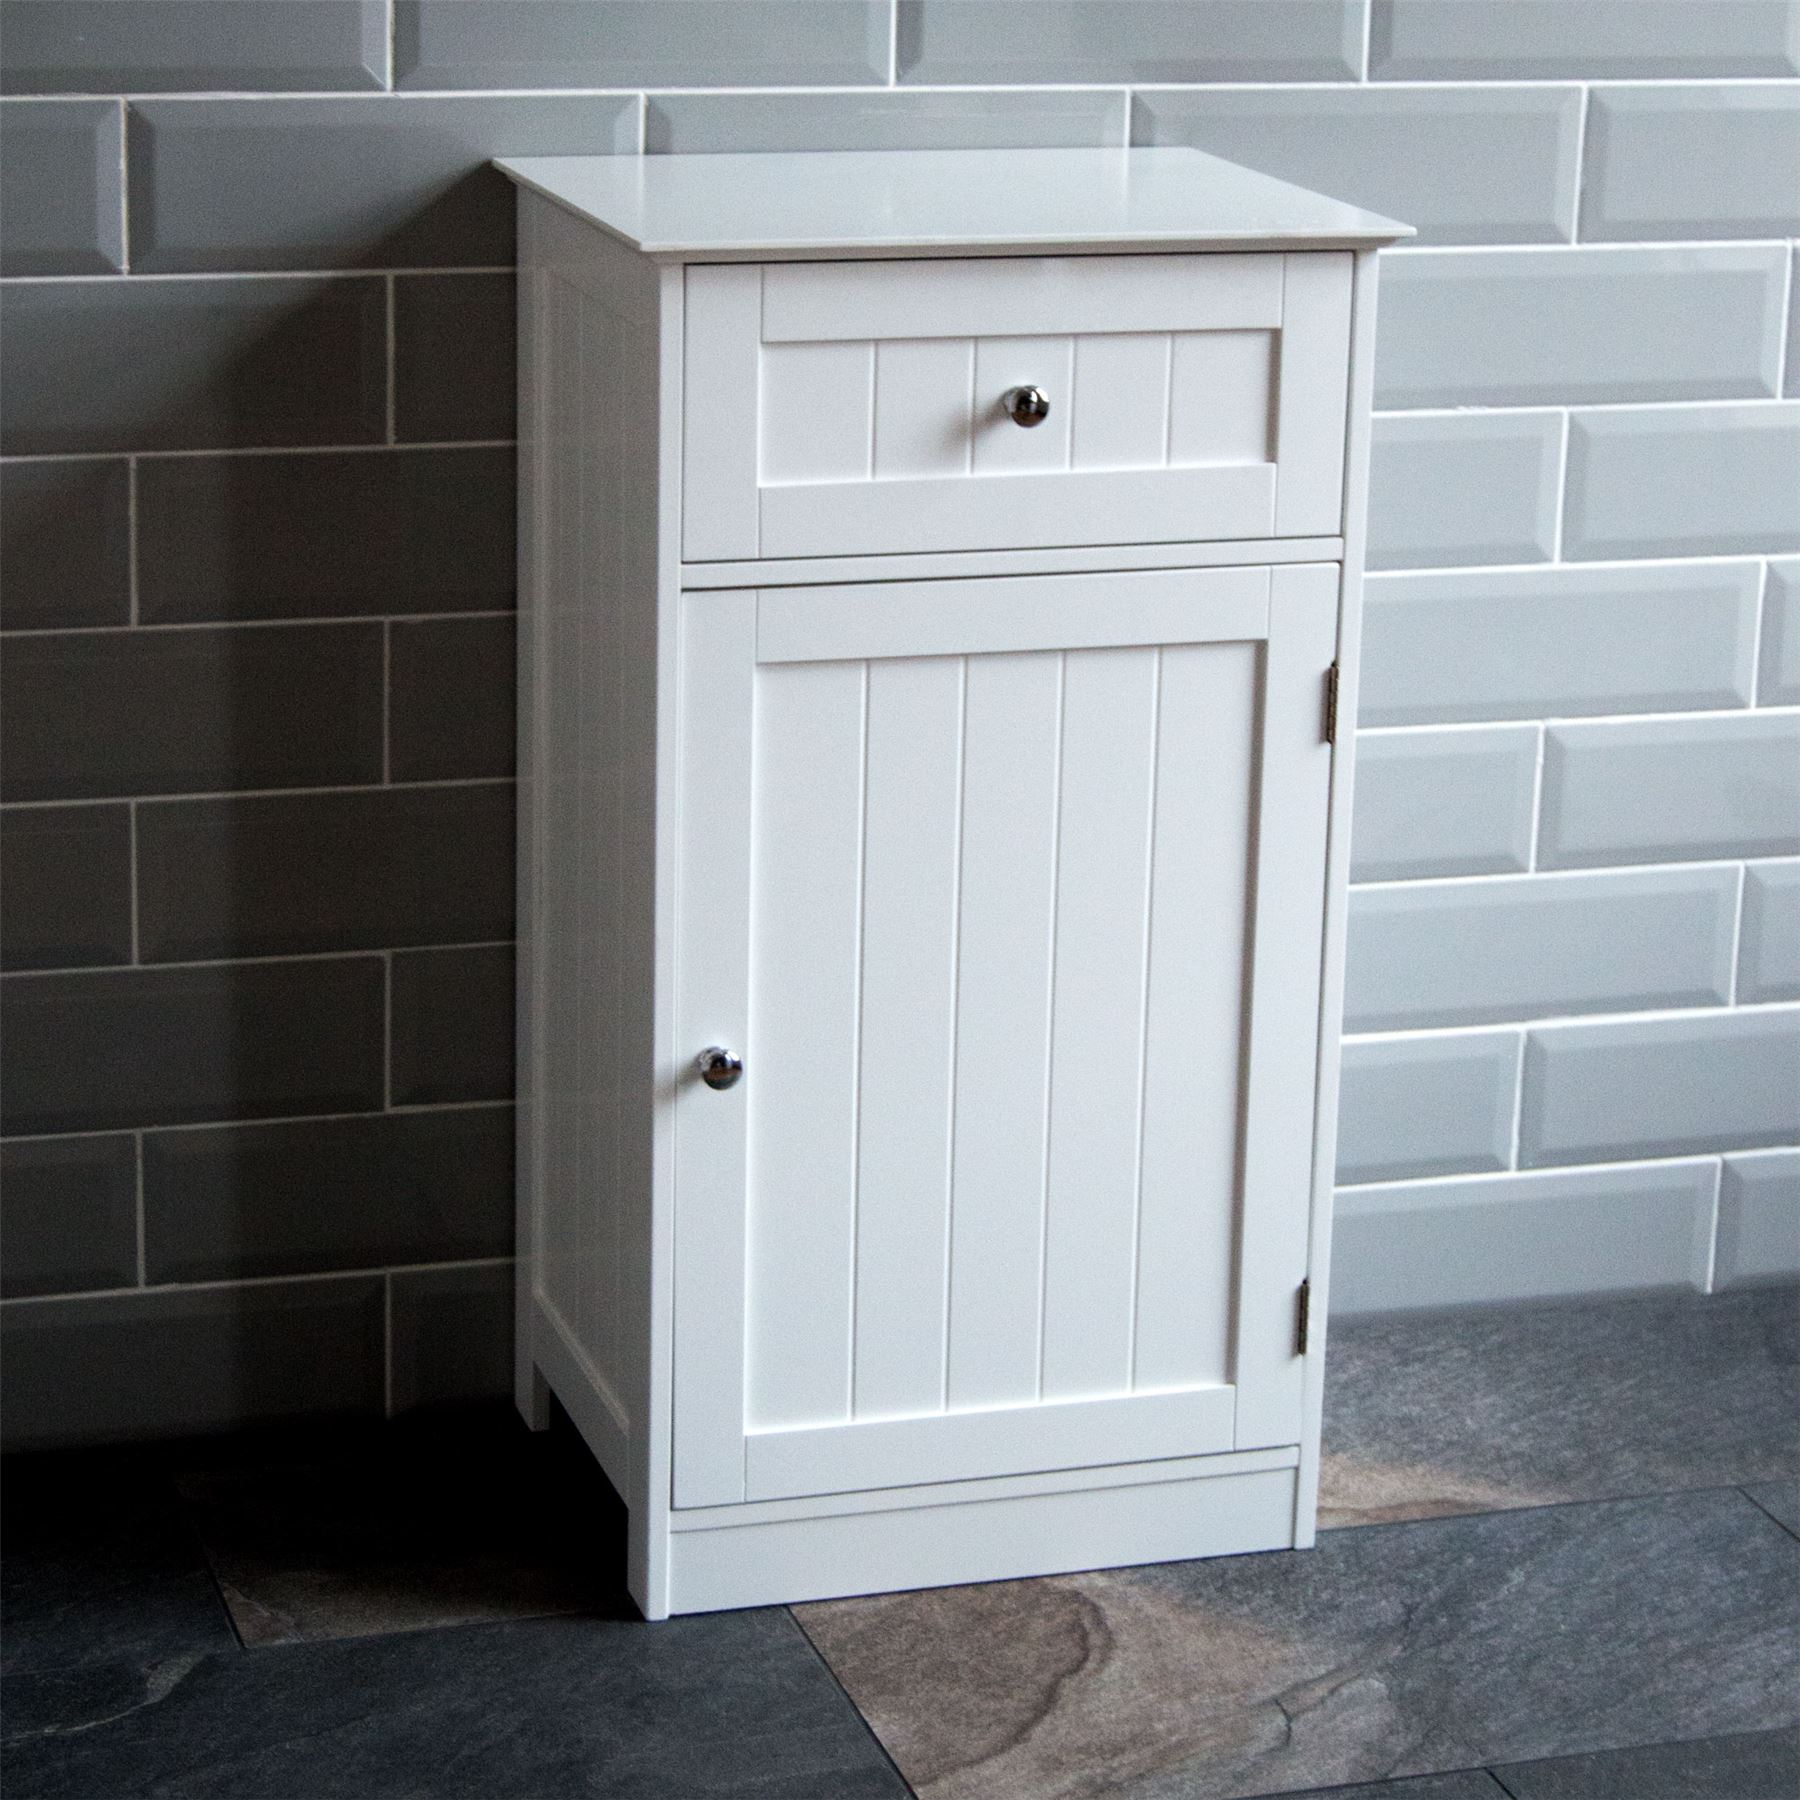 Bathroom cabinet 1 door 1 drawer freestanding storage unit for White wooden bathroom drawers